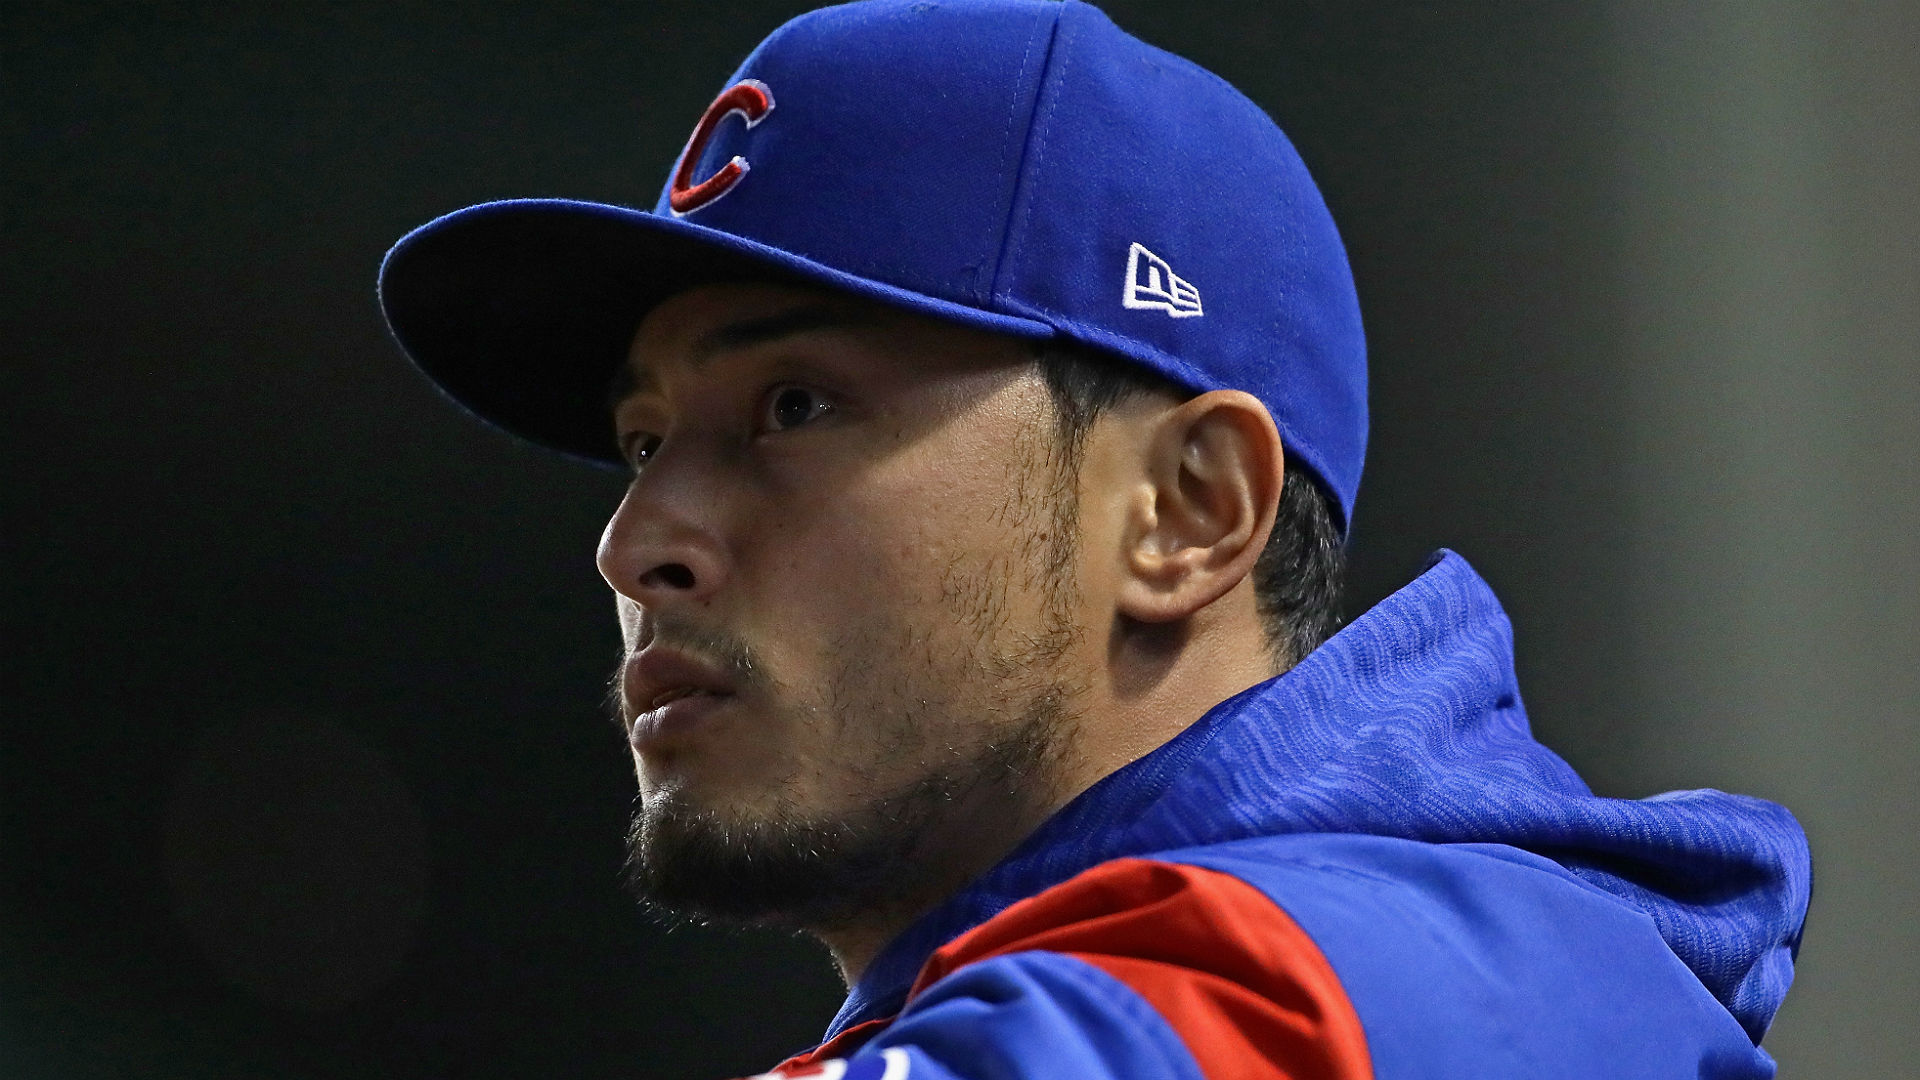 Yu Darvish injury update: Cubs pitcher has procedure on elbow; expected to be ready for spring training